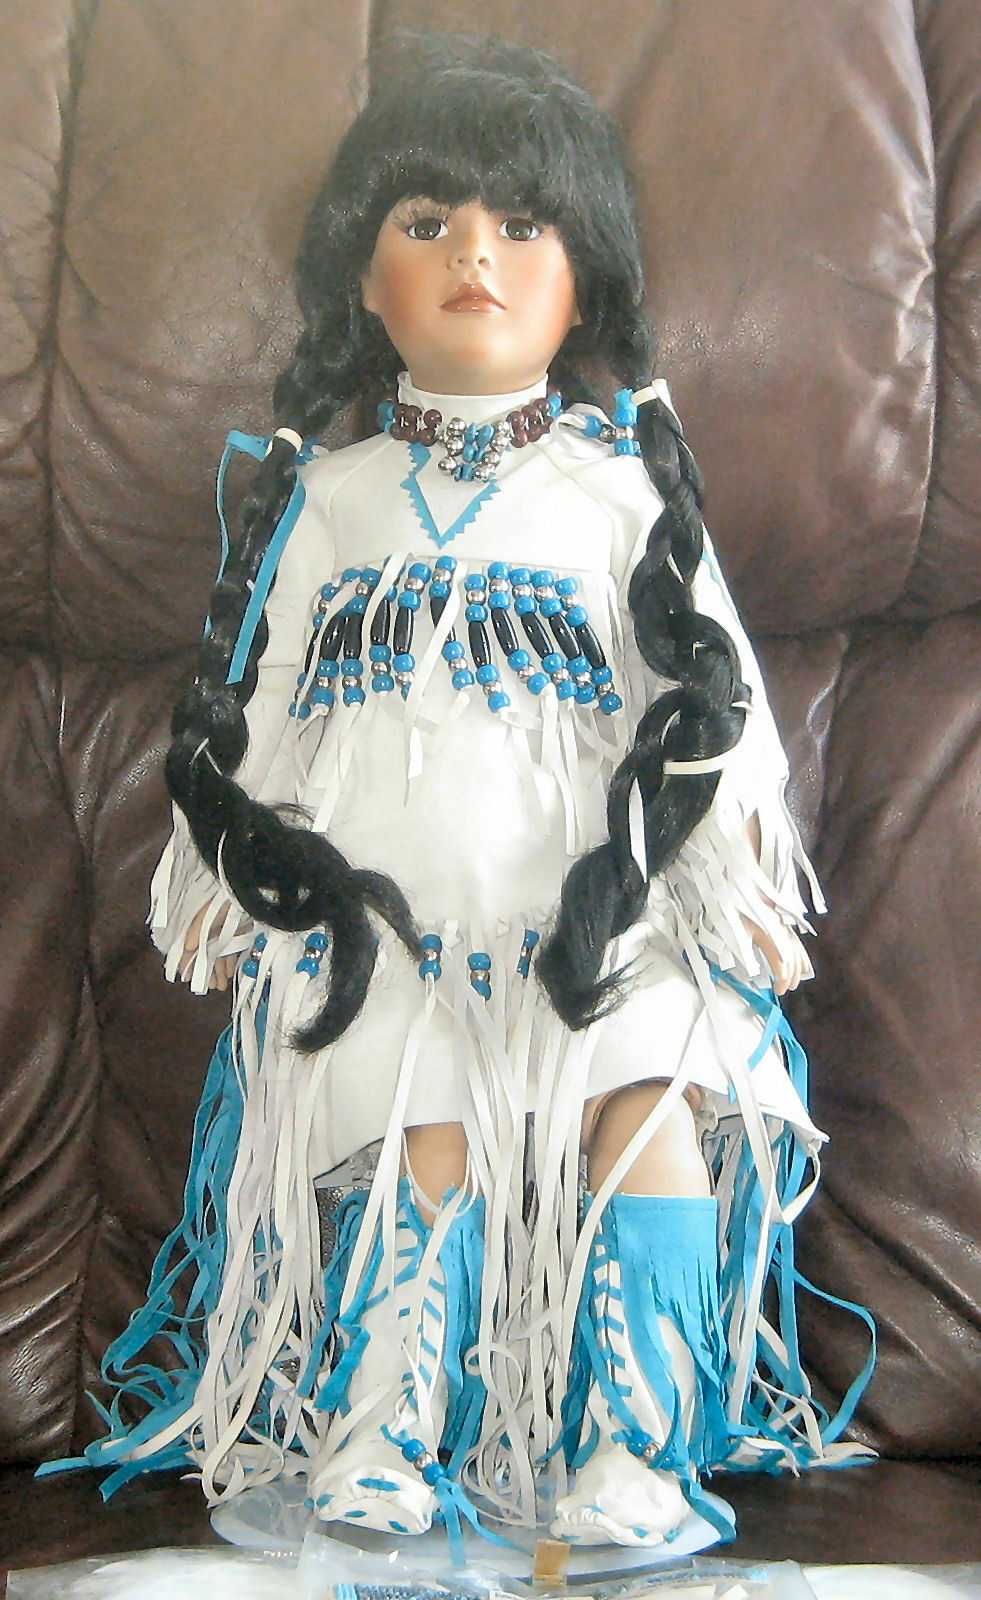 American Artists Collection Porcelain Doll By KAIS 'ANGEL FEATHER' Boxed